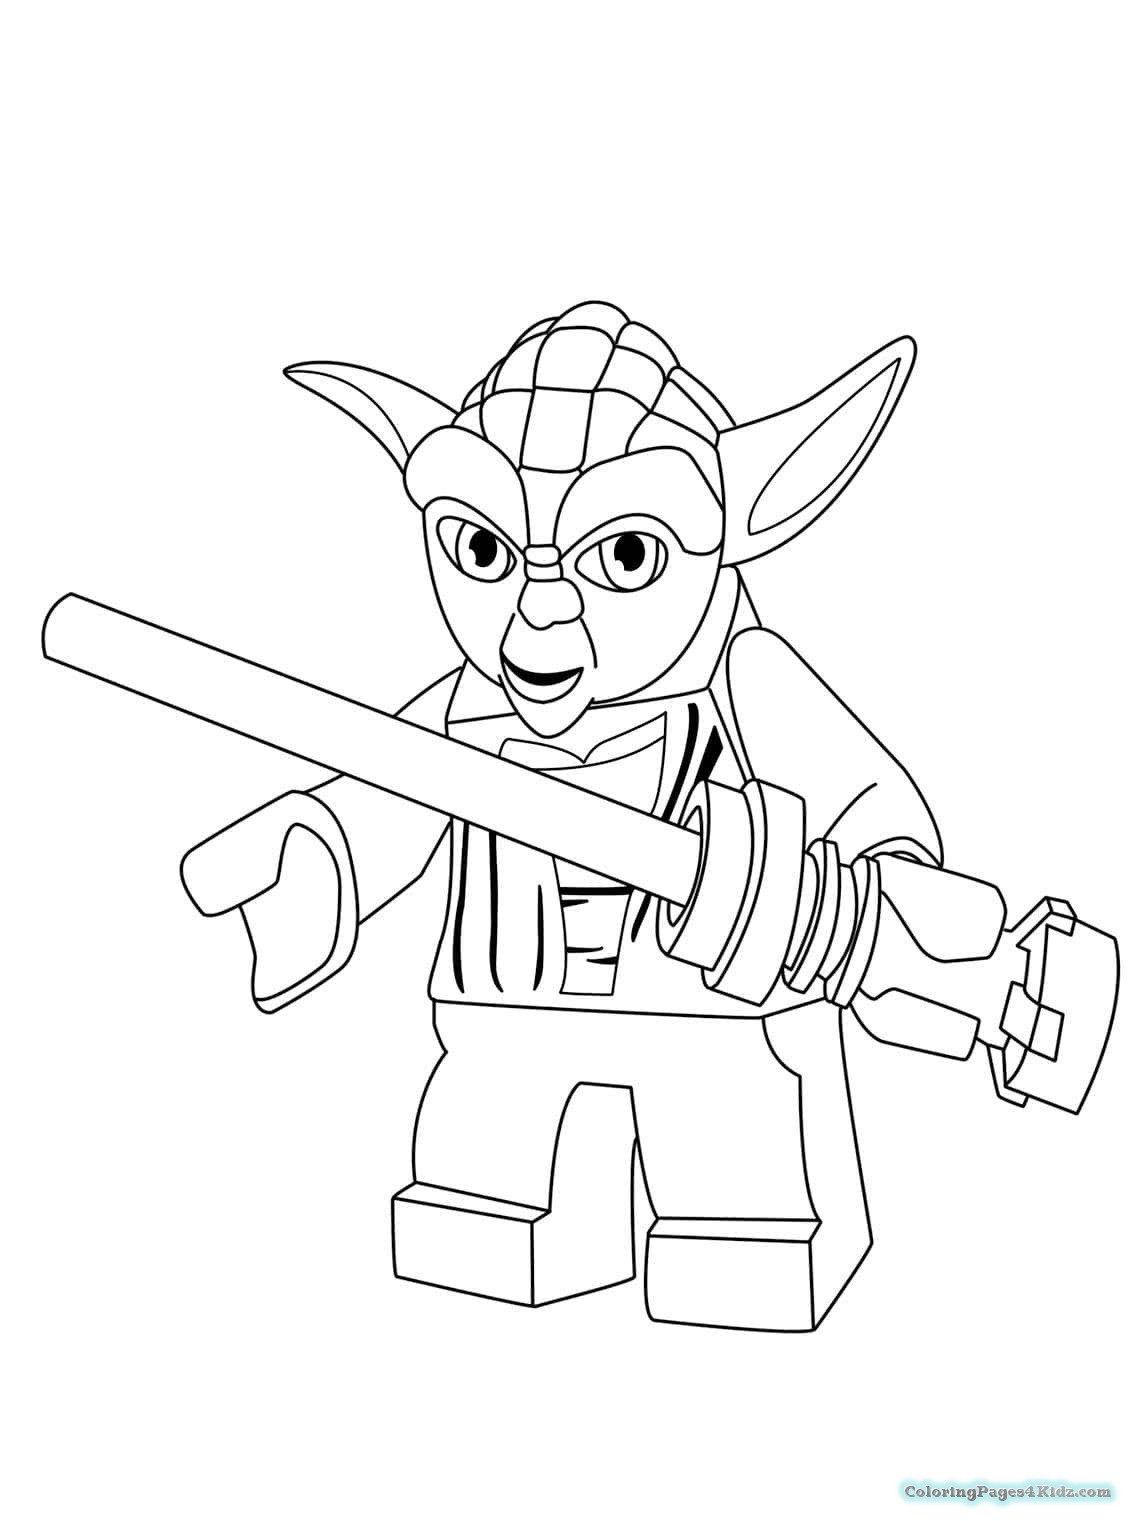 legos star wars coloring pages star wars the force awakens lego coloring pages coloring wars coloring star pages legos